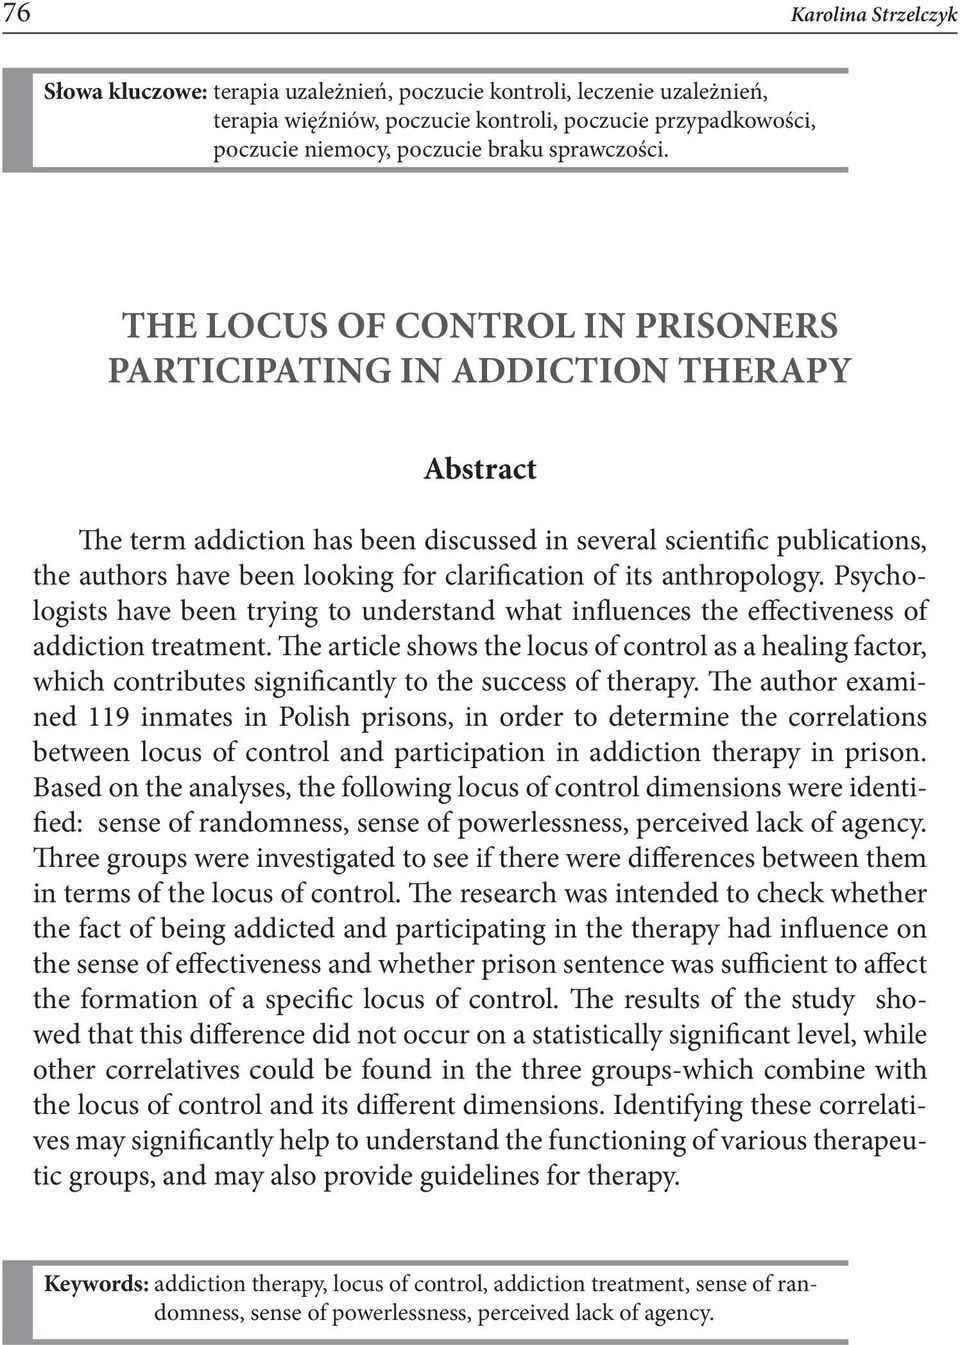 THE LOCUS OF CONTROL IN PRISONERS PARTICIPATING IN ADDICTION THERAPY Abstract The term addiction has been discussed in several scientific publications, the authors have been looking for clarification